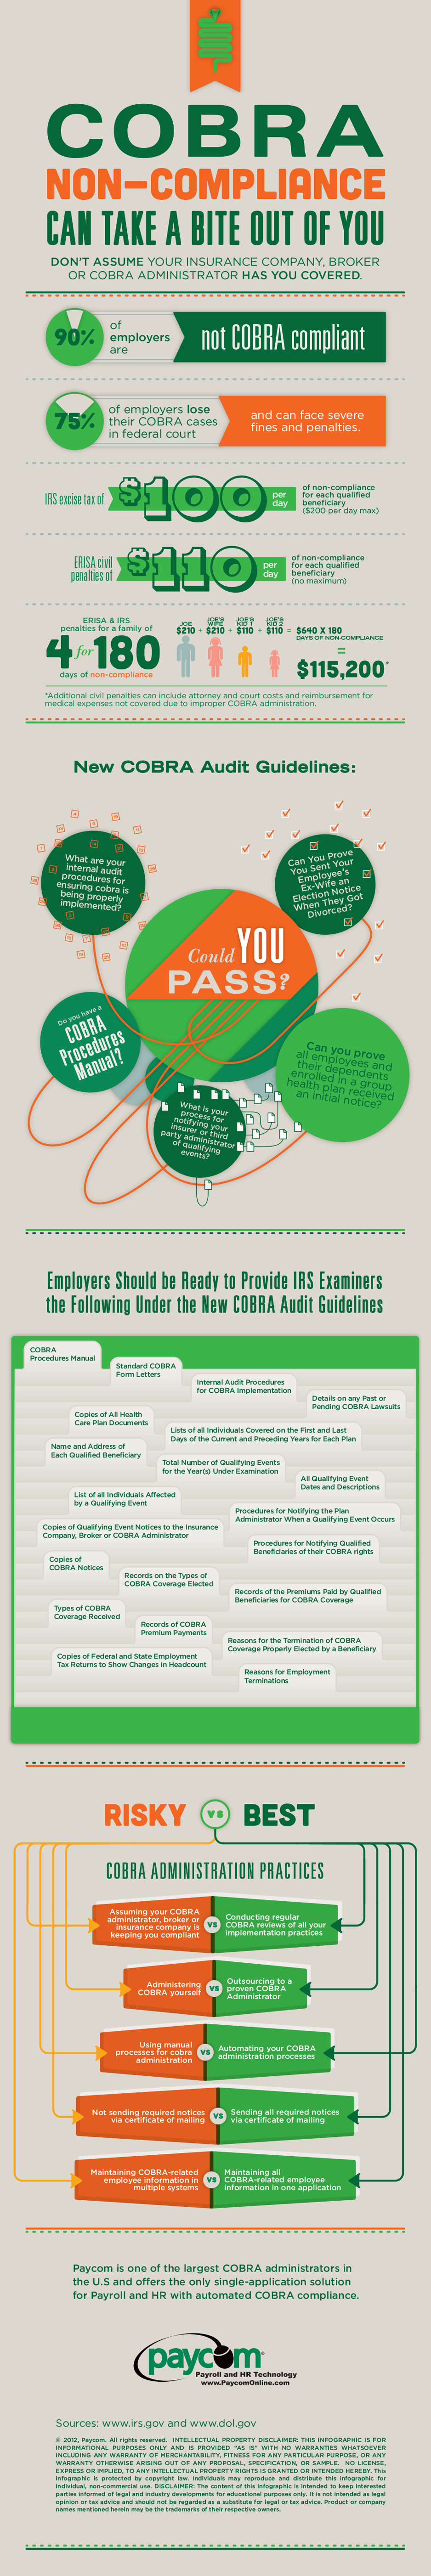 Paycom-Infographic-4.png